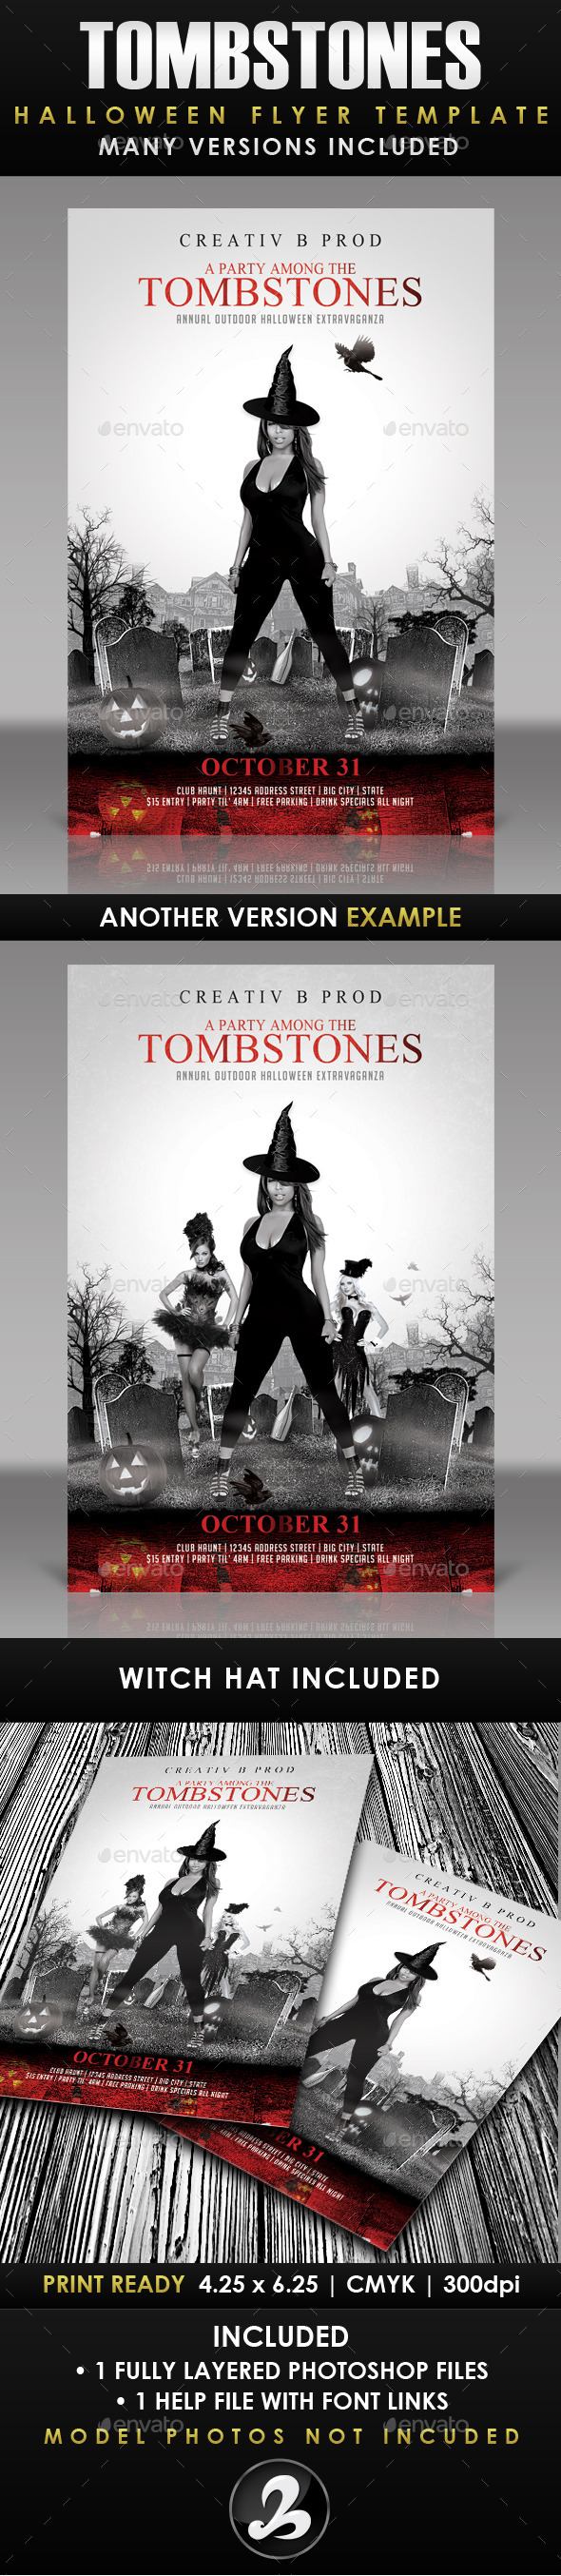 A Party Among Tombstones Halloween Flyer Template